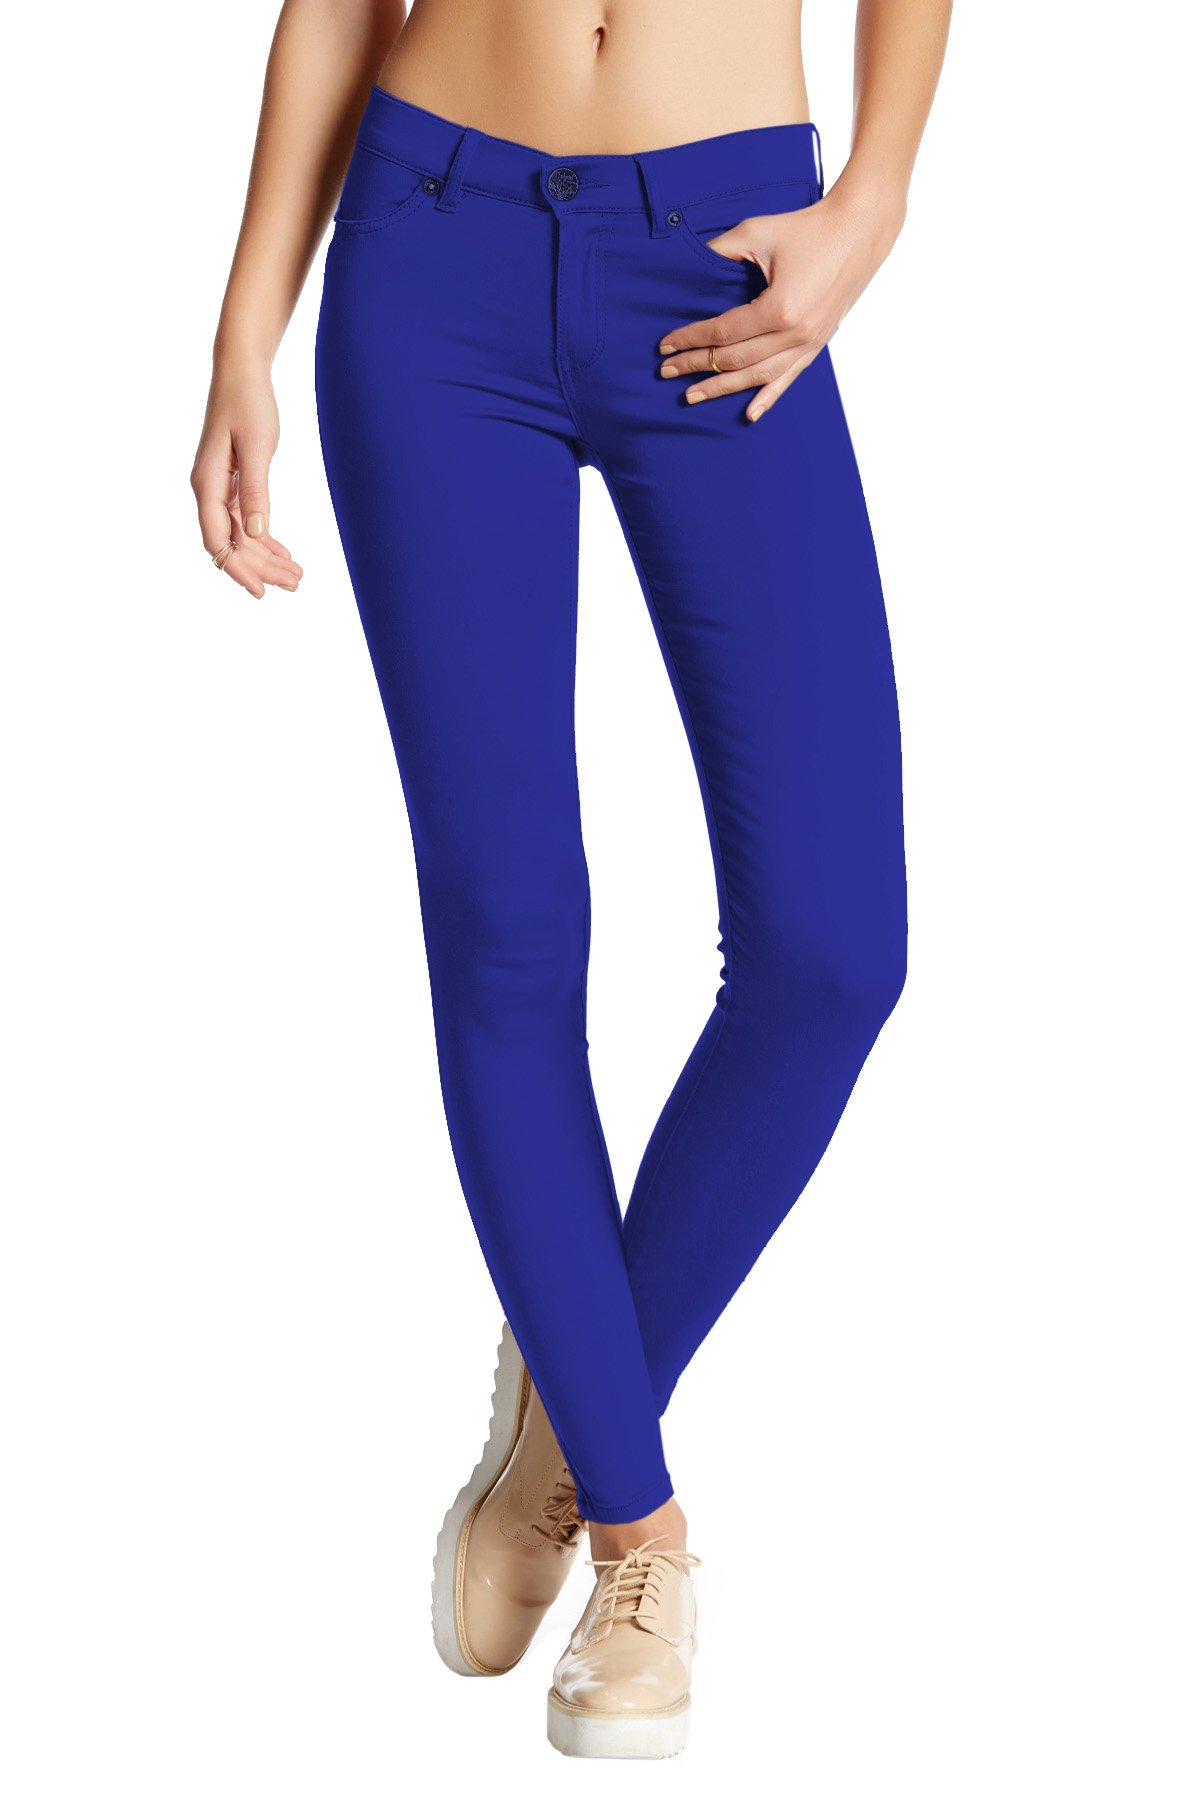 Womens Super Stretch Comfy Skinny Pants P44876SK Royal Large